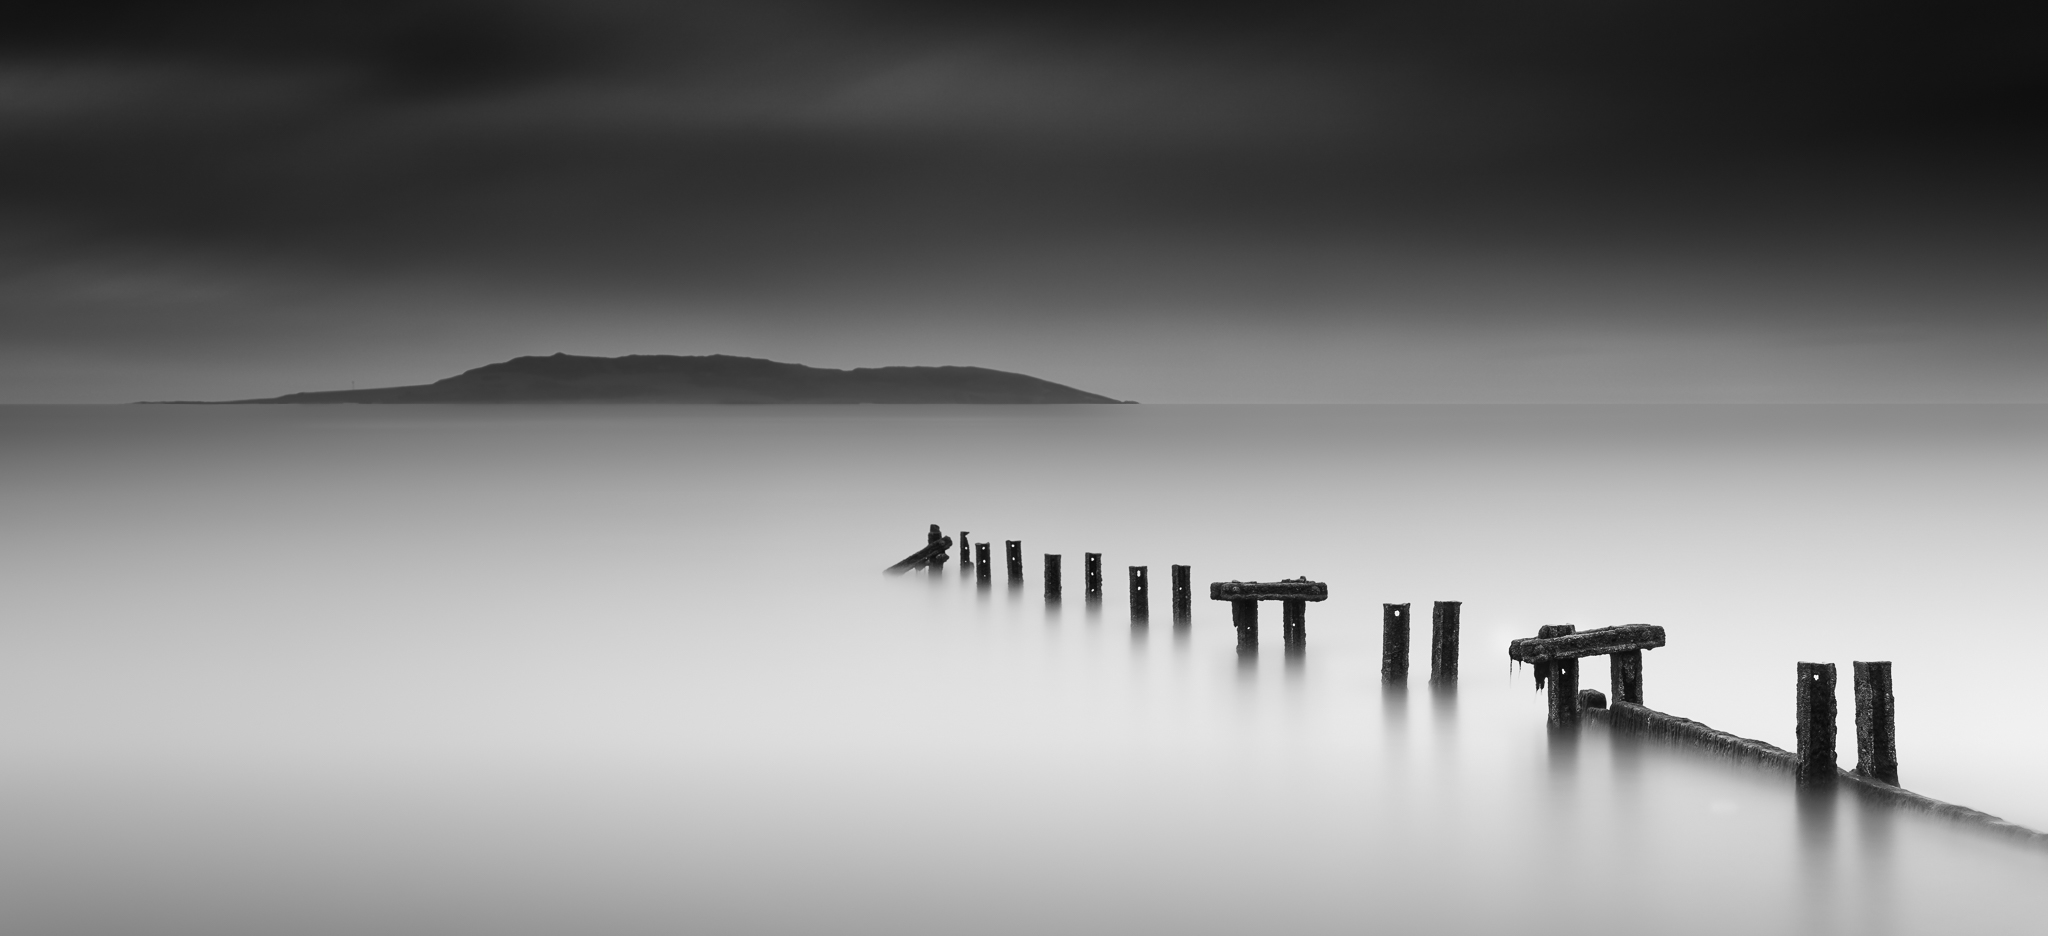 fine art long exposure seascape photo taken at malahide, dublin, ireland on an overcast day when the sunrise was not as colourful as expected